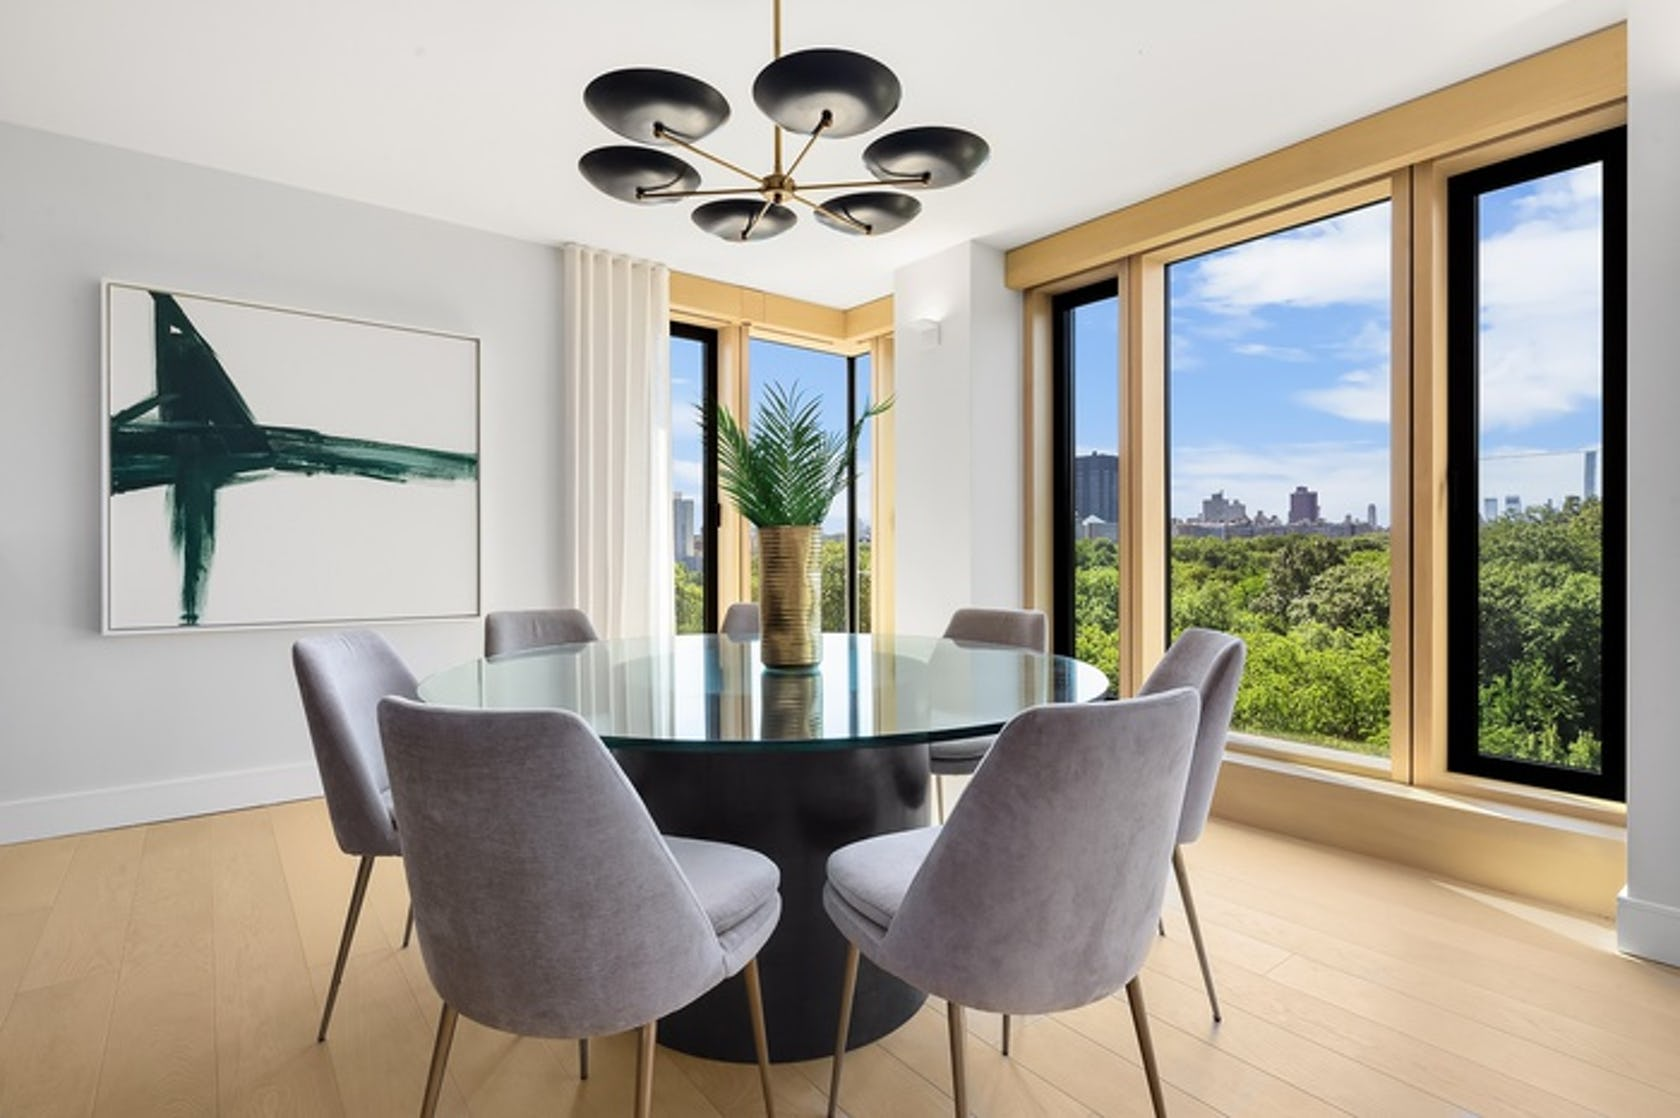 chair furniture dining room room indoors